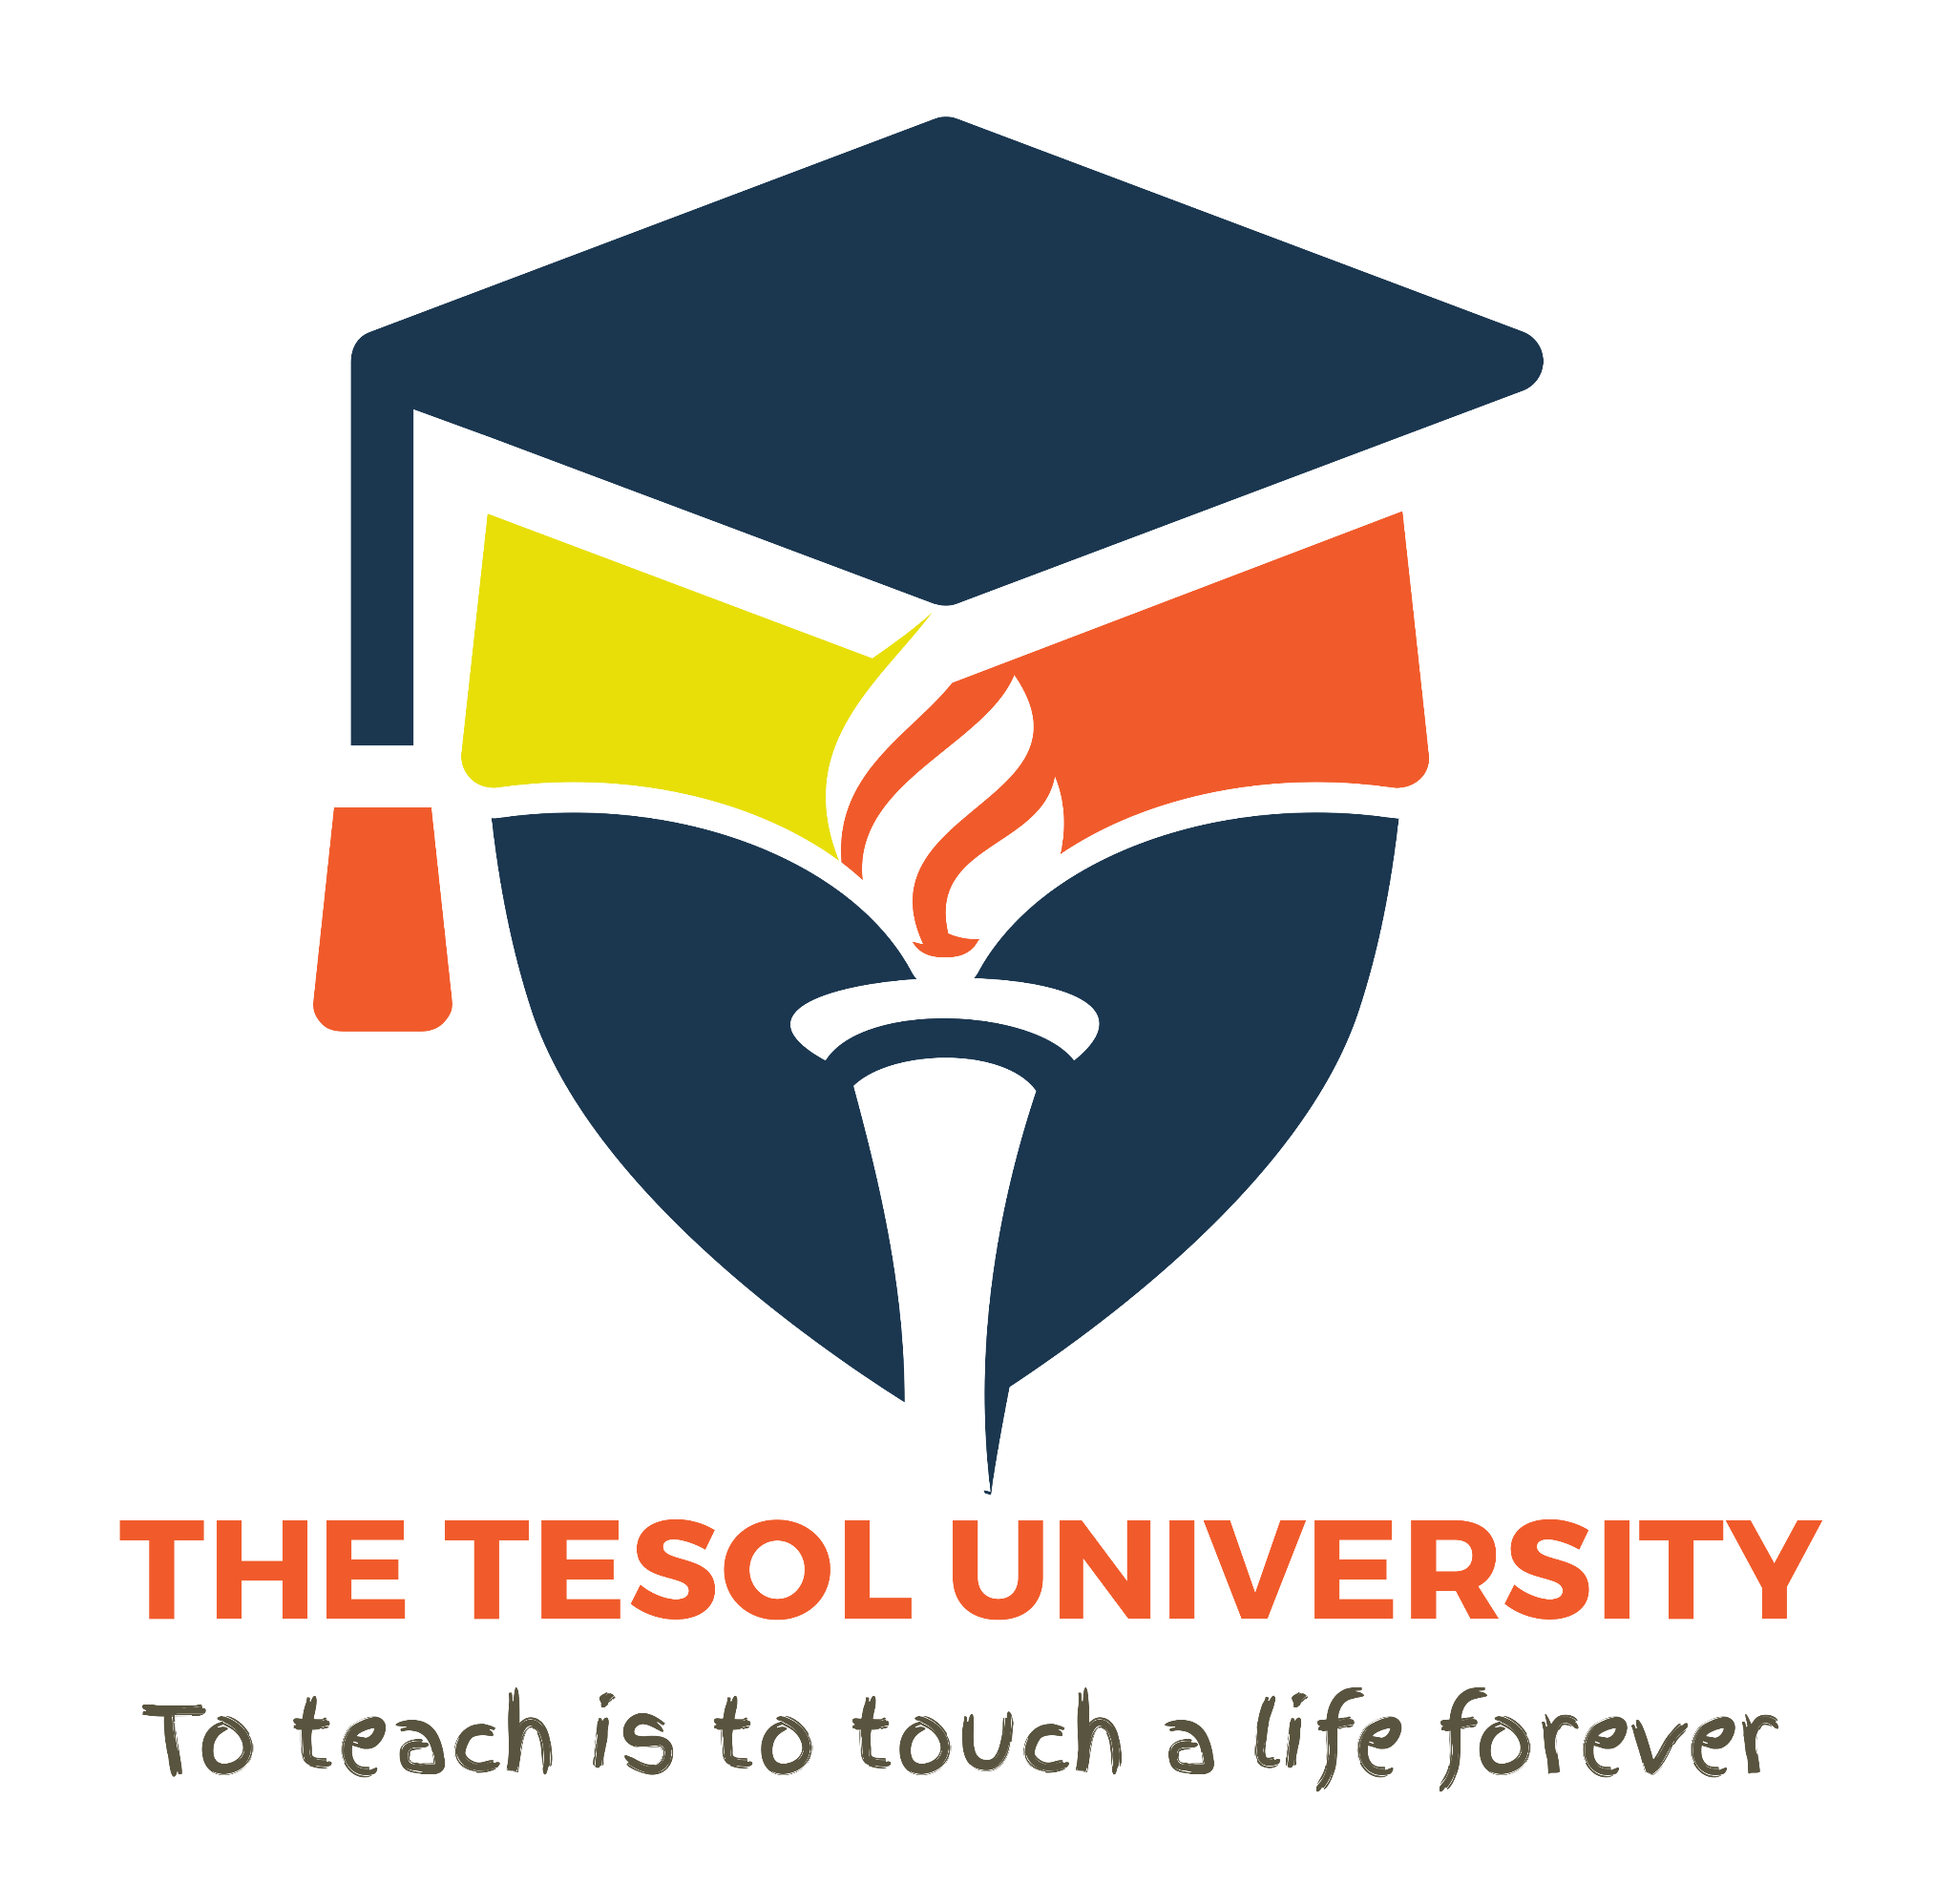 MA TESOL Course Fee - $1250.00 Single Payment